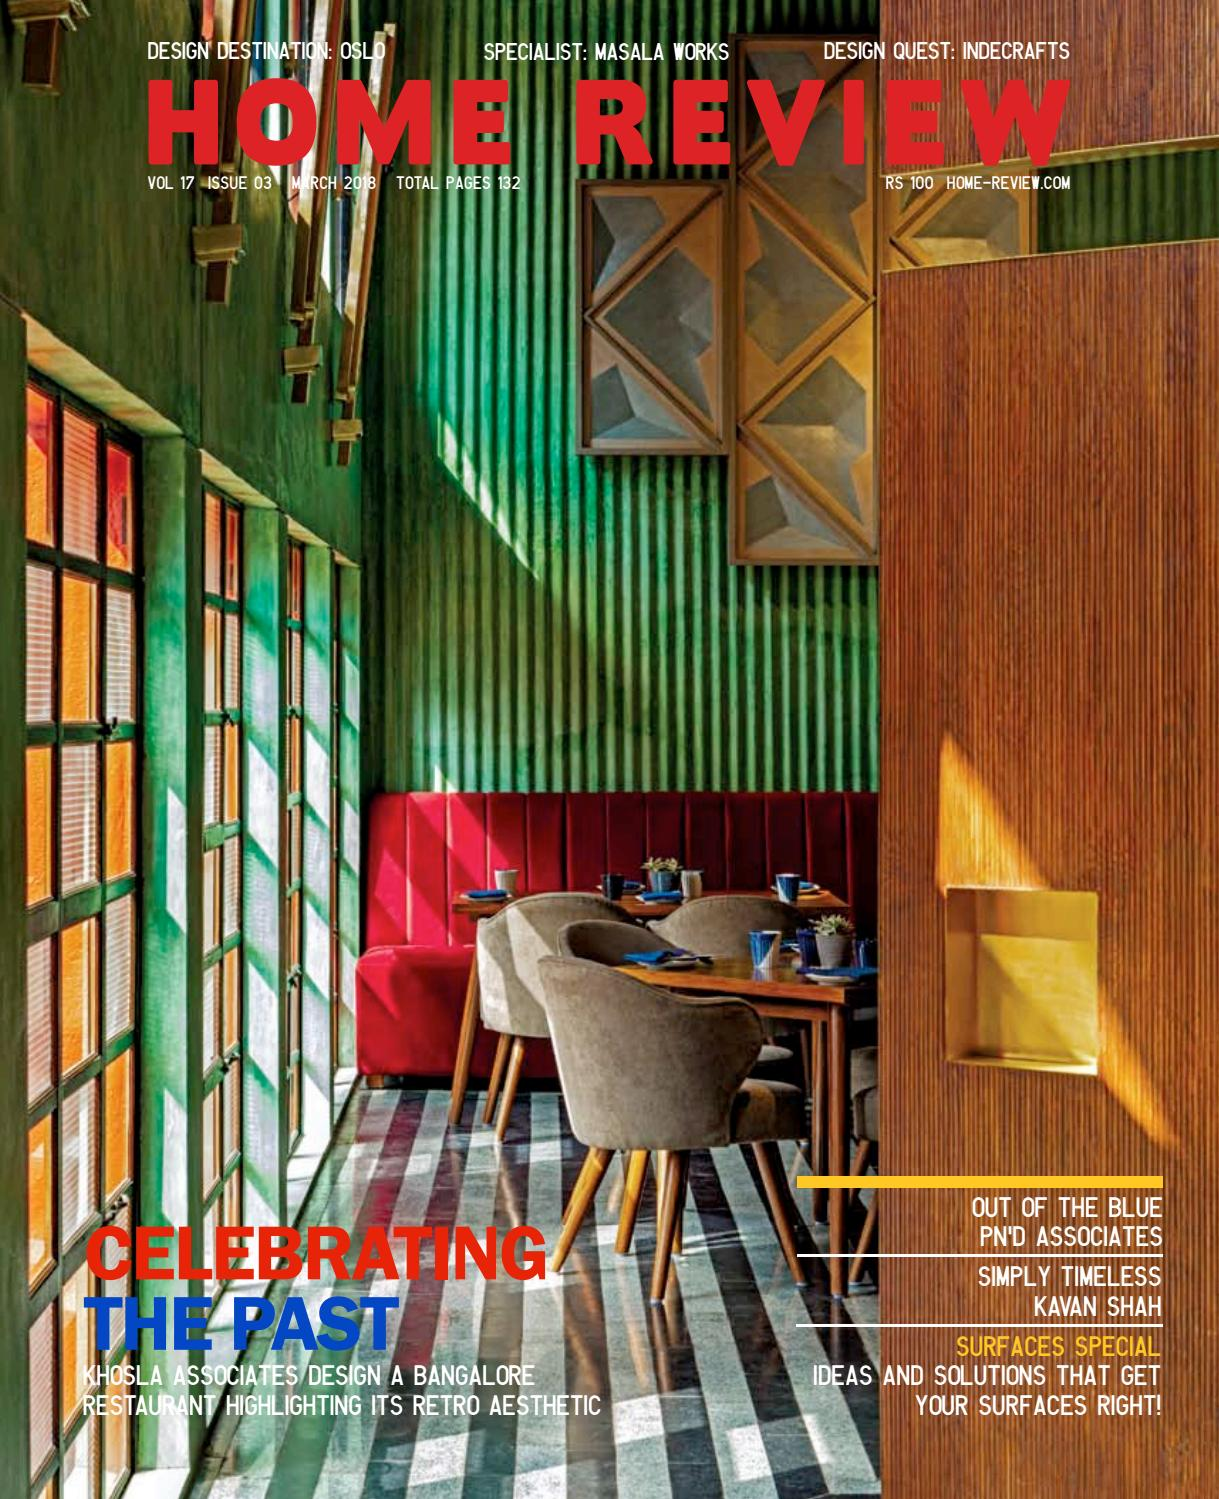 Home Review March 2018 By Home Review Issuu